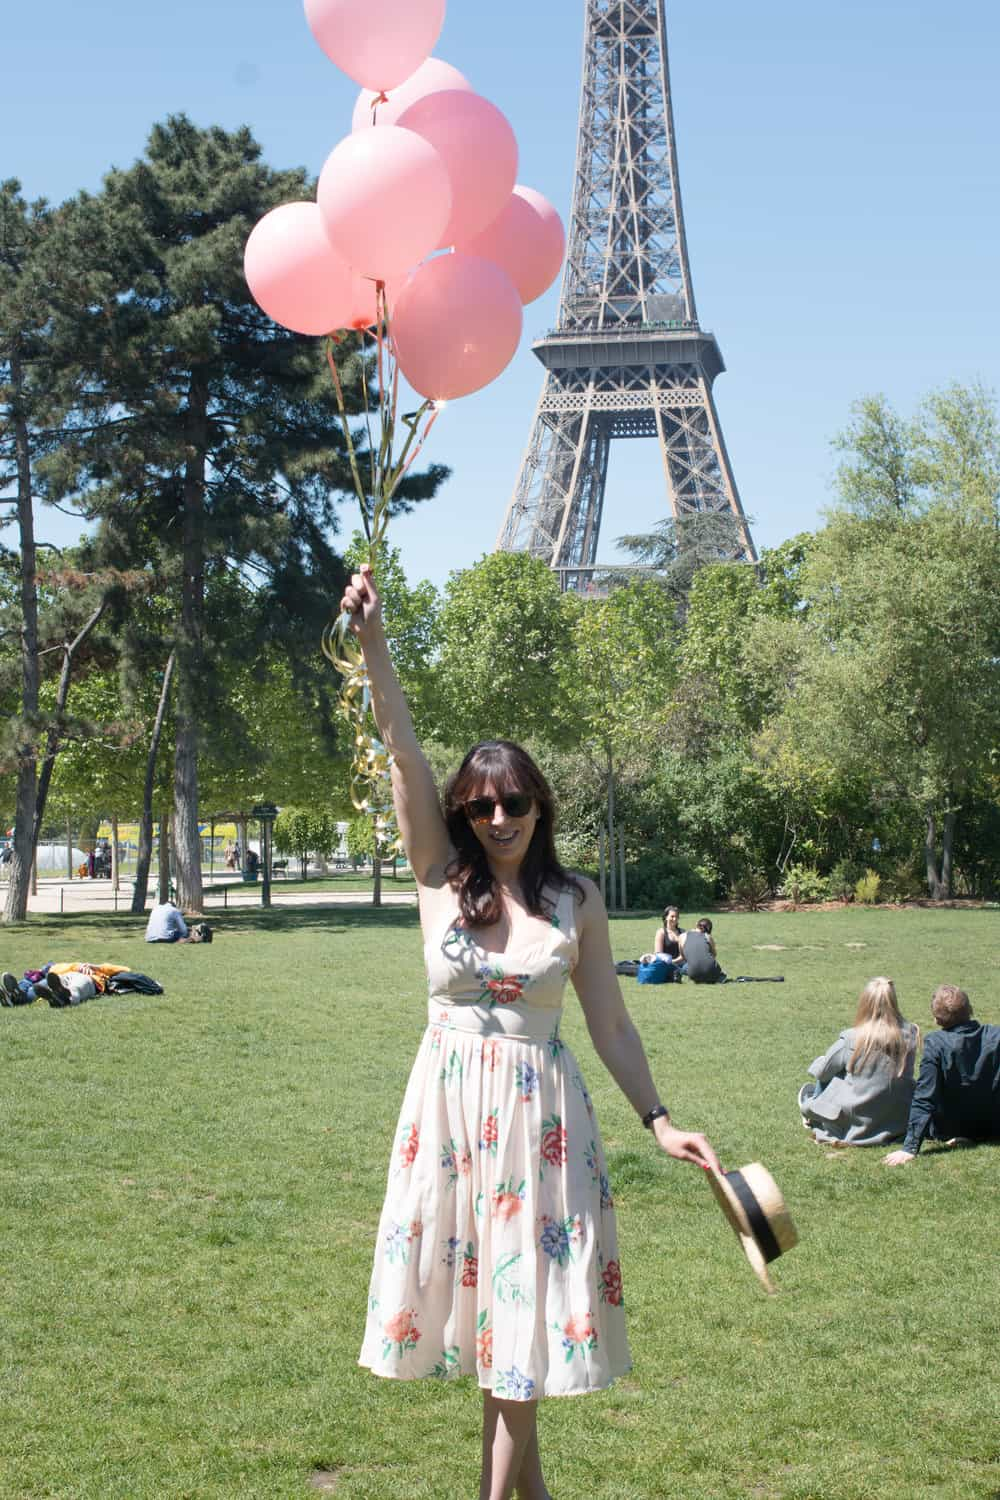 rebecca plotnick with pink balloons in front of the eiffel tower in paris france